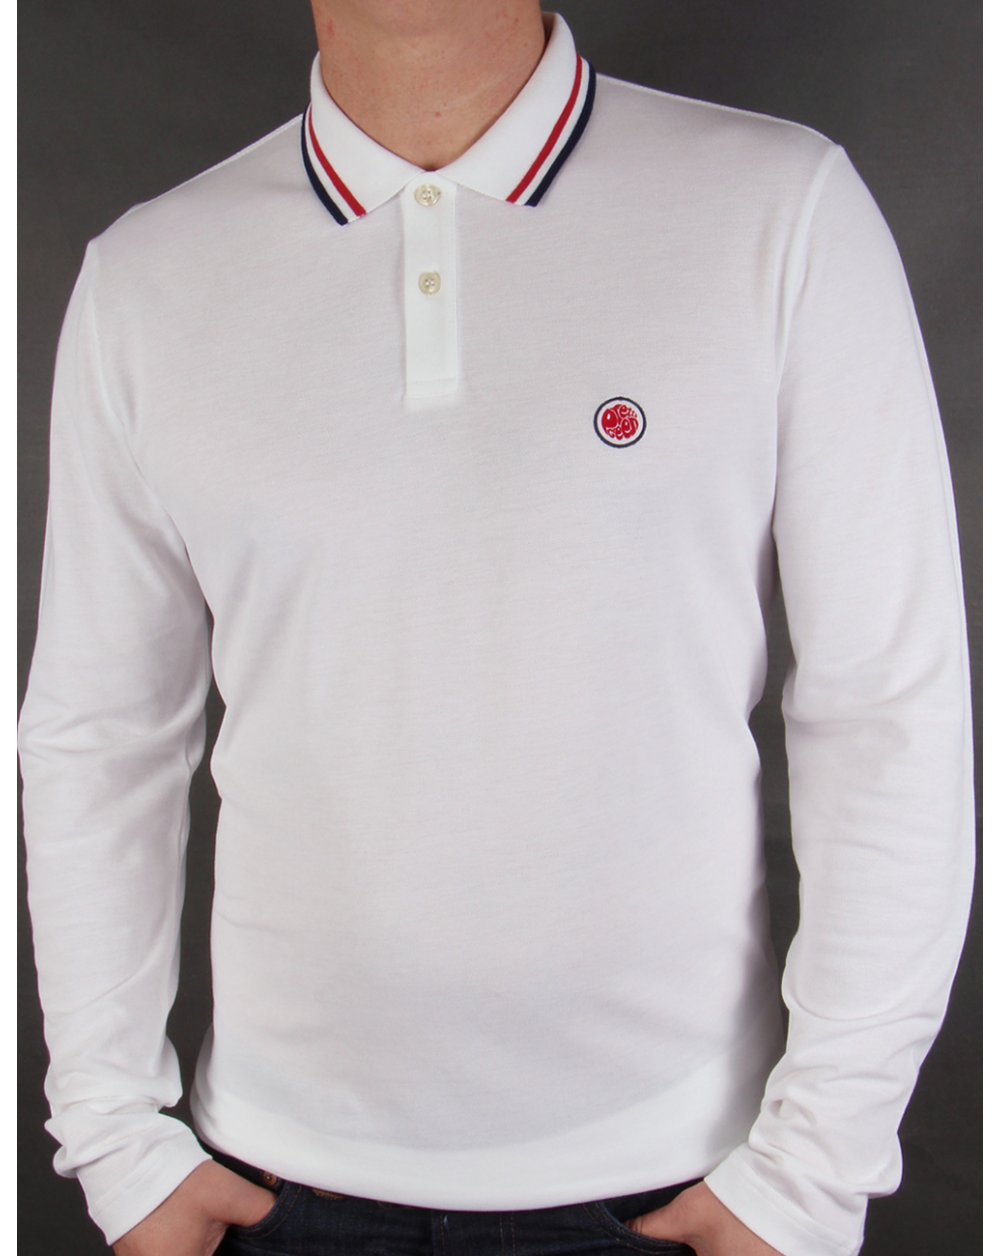 Free shipping and returns on Men's Long Sleeve Polo Shirts at learn-islam.gq Skip navigation. Give a little wow. The best gifts are here, every day of the year. Shop gifts. Designer. Sale; Show Sleeve Length. Short Sleeve Long Sleeve. Show Fit. Extra Slim Fit Slim Fit Regular Fit Classic Fit.